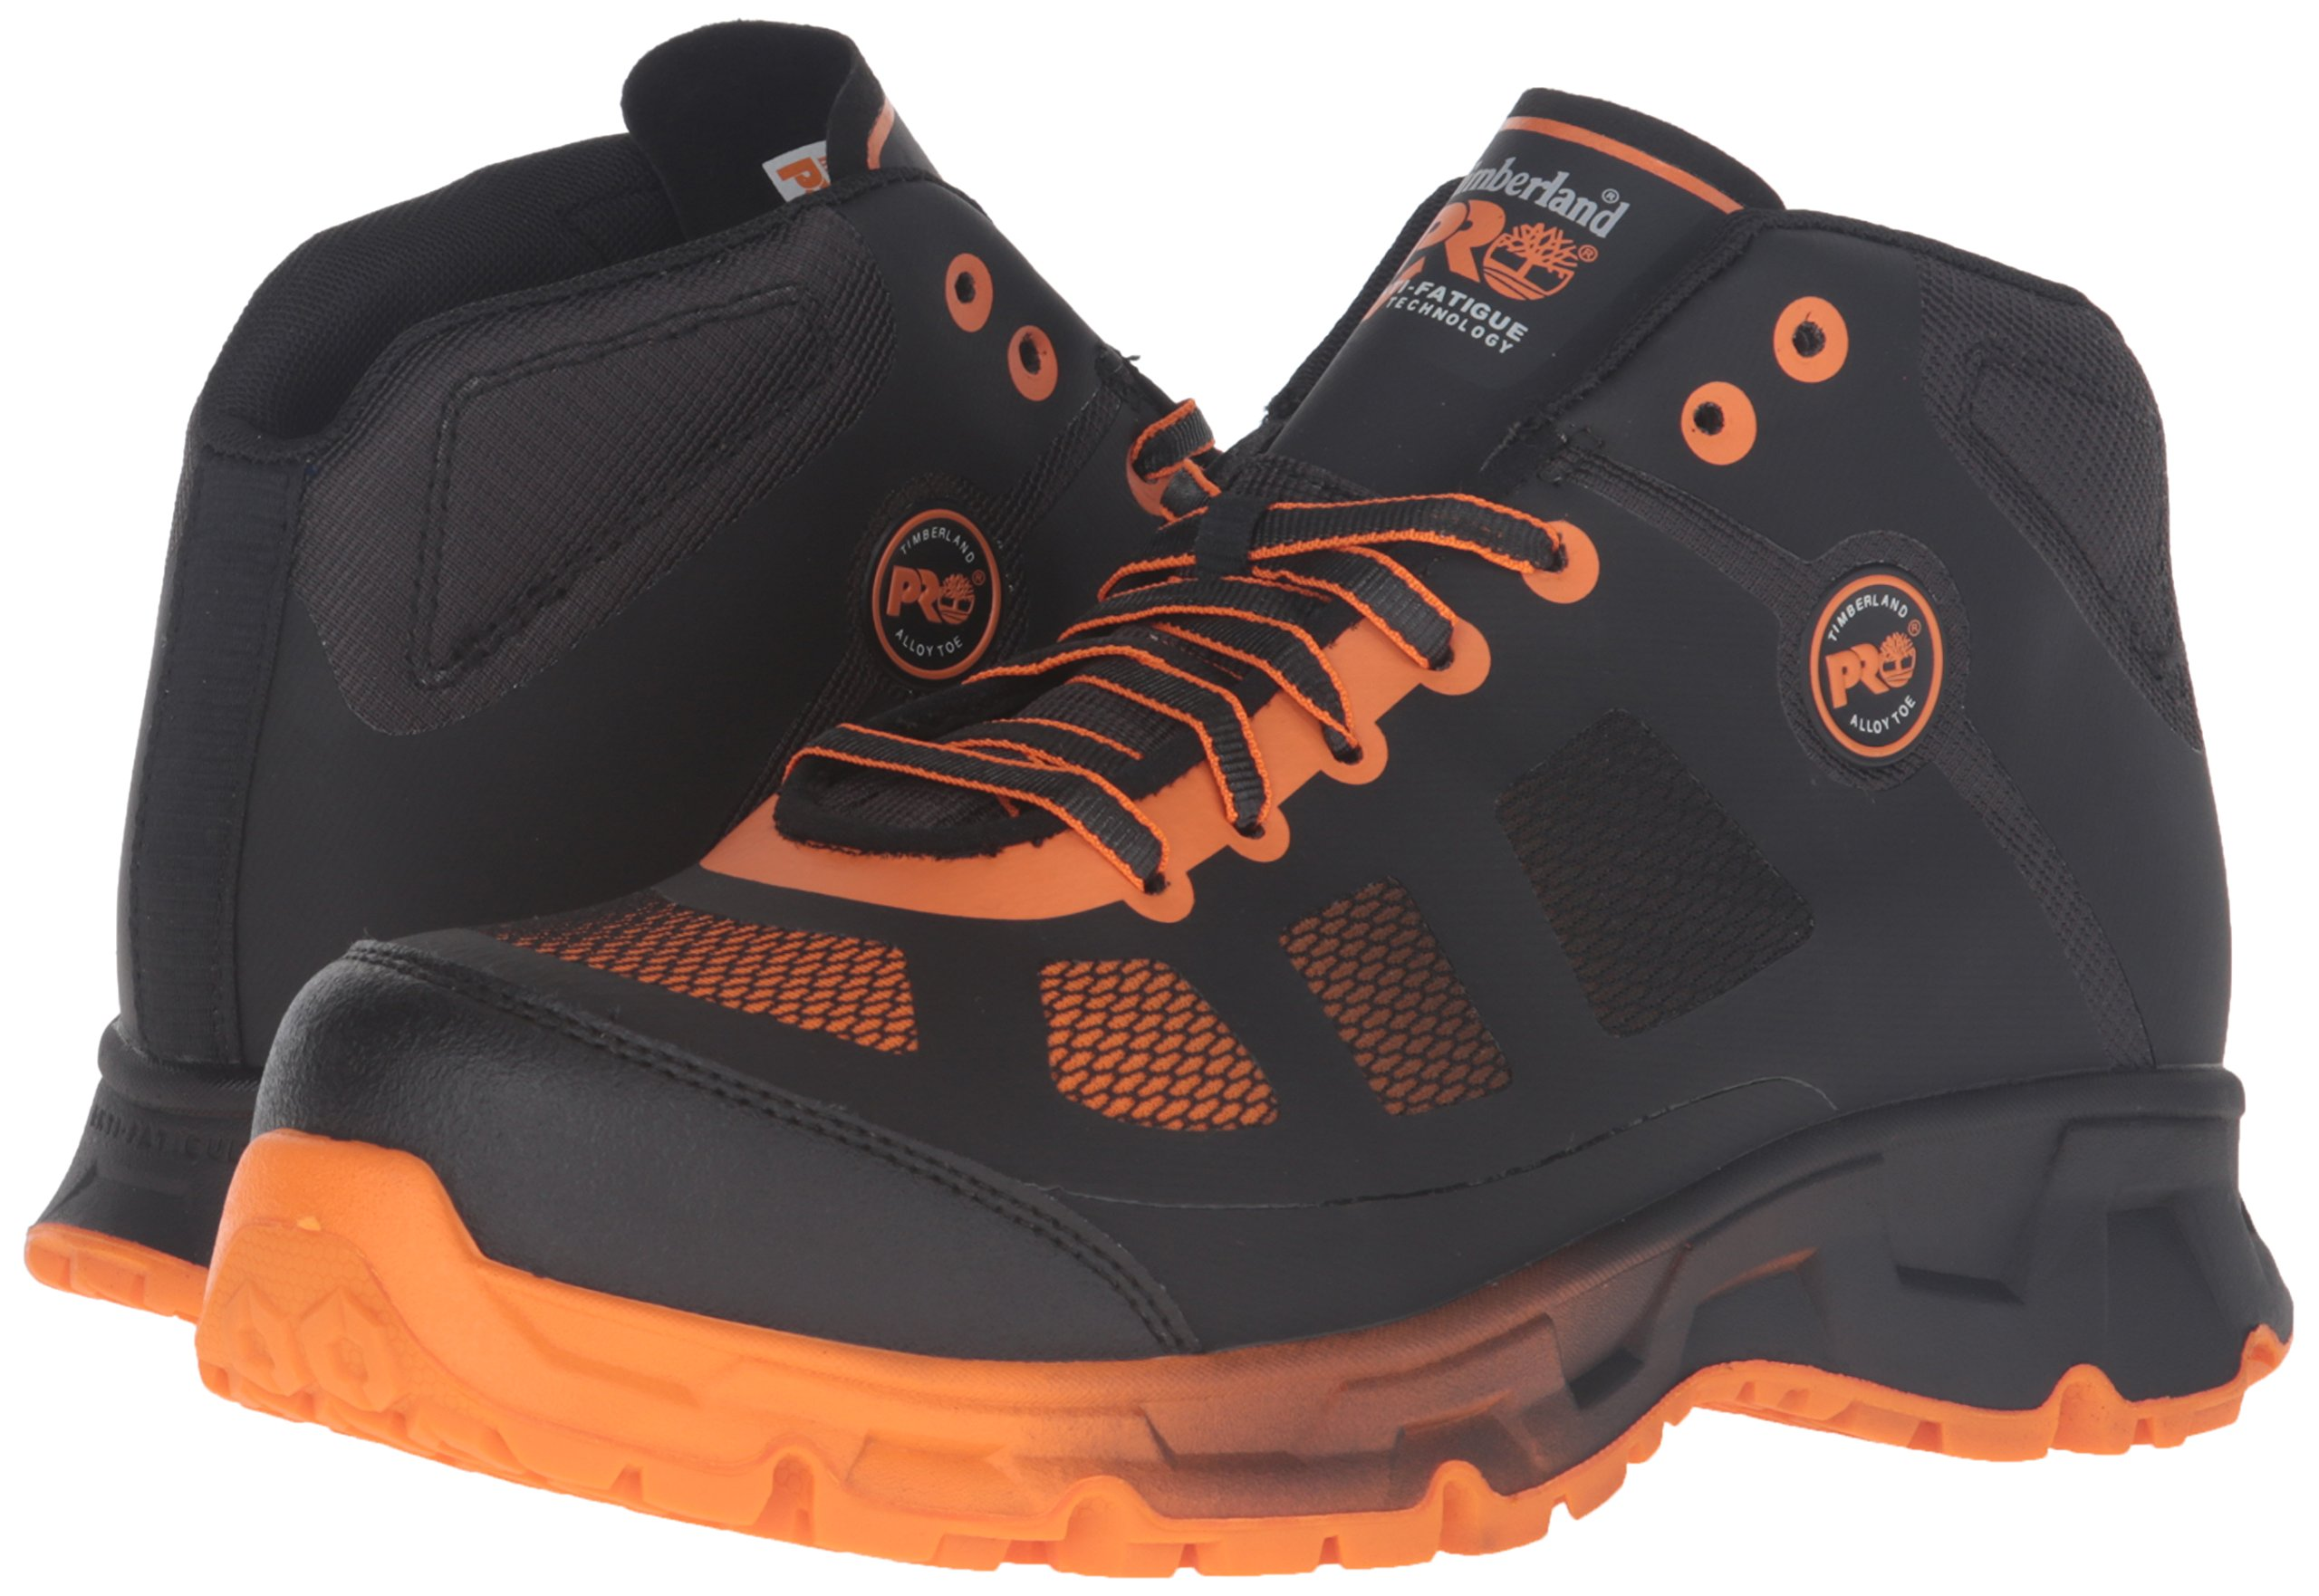 861ead1054e Timberland PRO Men's Velocity Alloy Safety-Toe Mid Industrial and ...